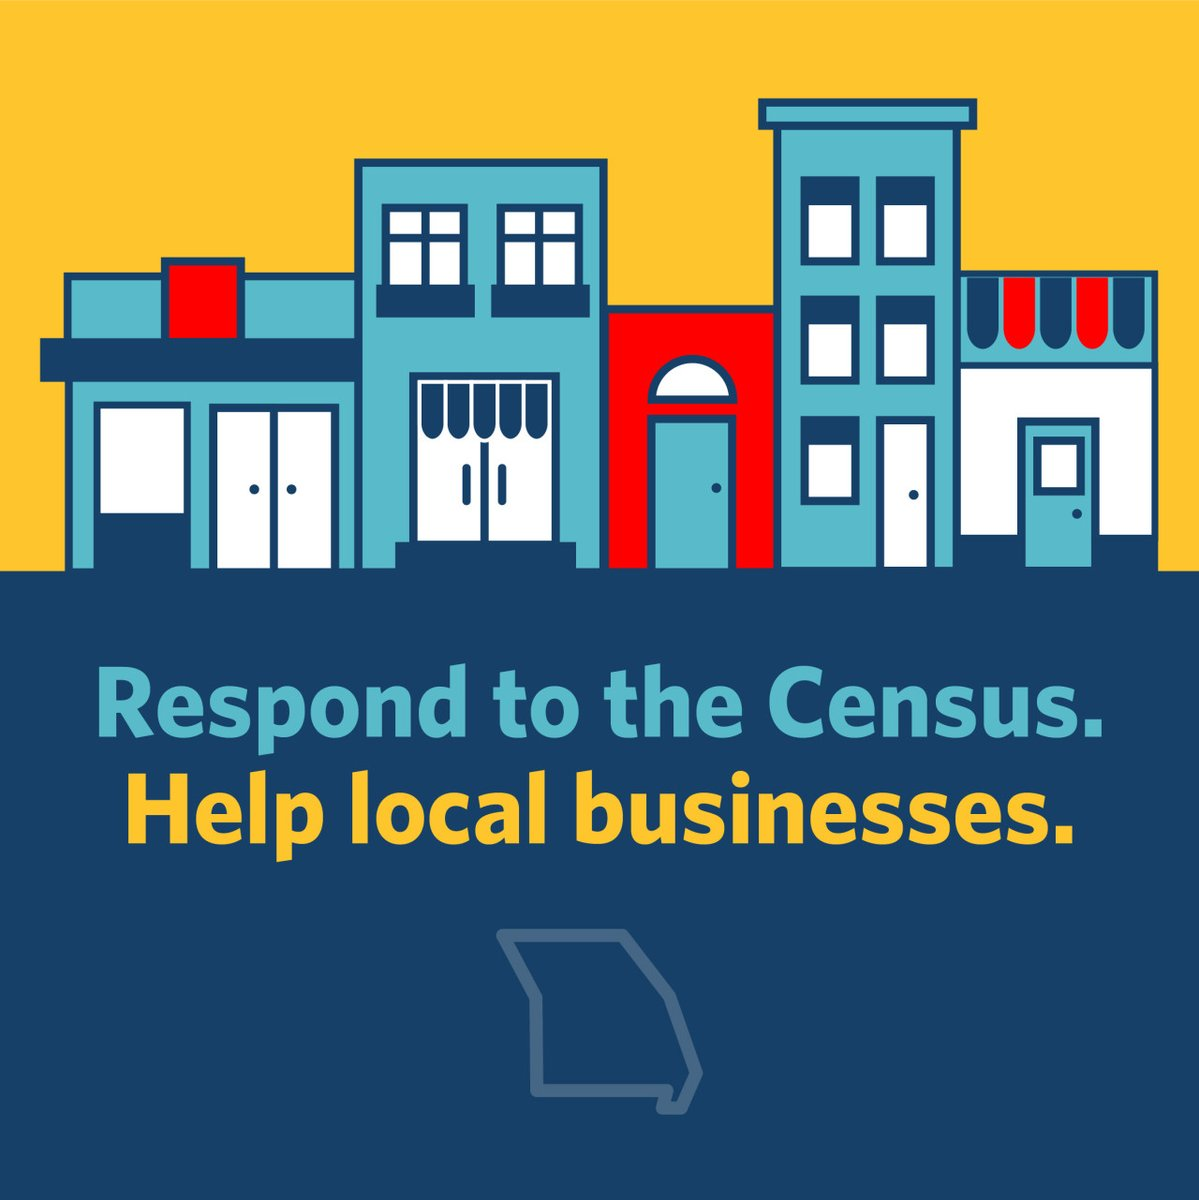 Joplin businesses count on Census data to make decisions. When we all respond, we support our local economy, job market, and infrastructure. Now, more than ever, Joplin businesses need your help. Respond to the #2020Census at  to make sure #JoplinCounts.